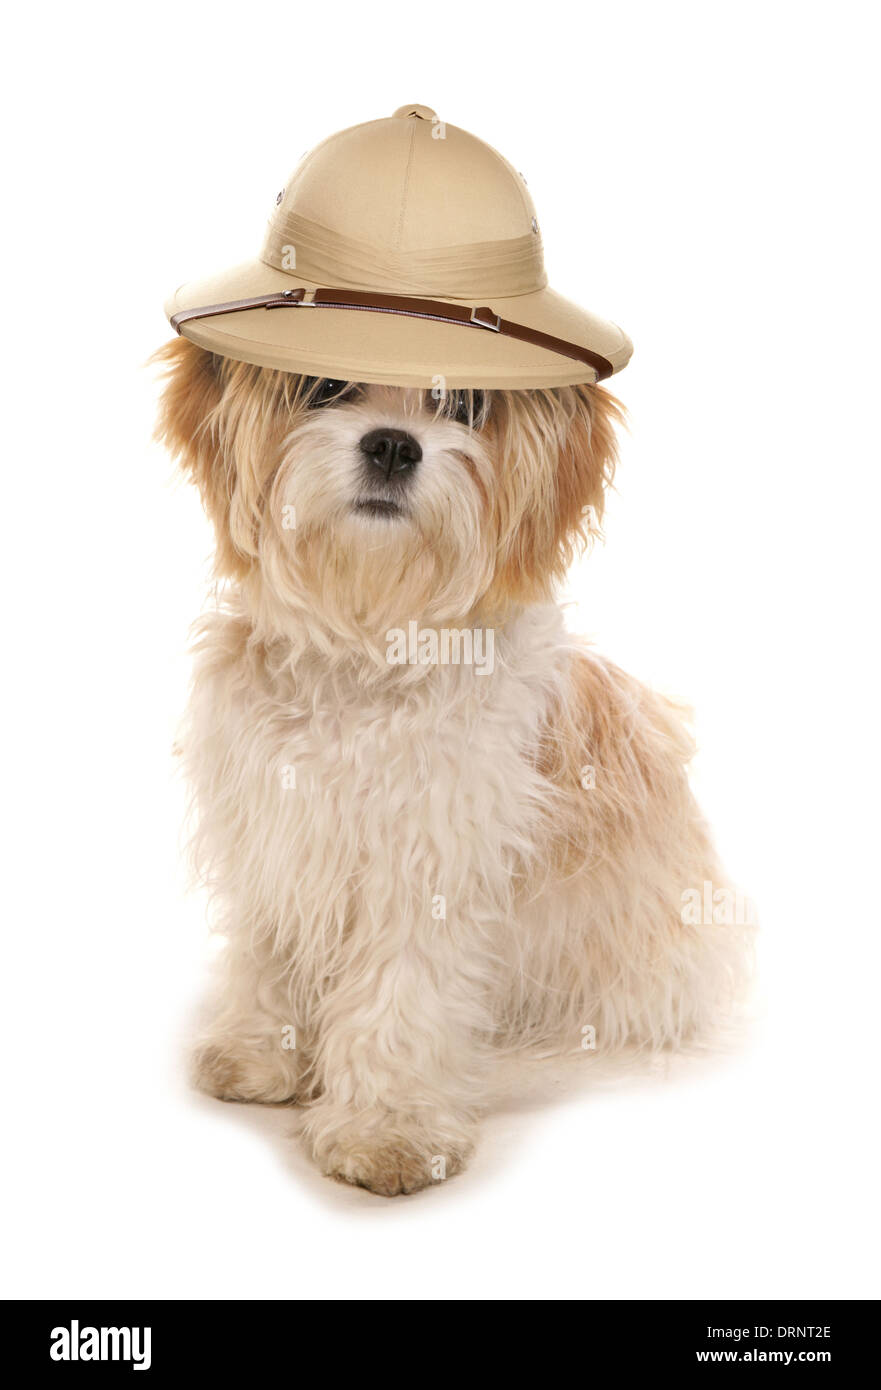 Shih tzu dog wearing a Safari explorers hat - Stock Image